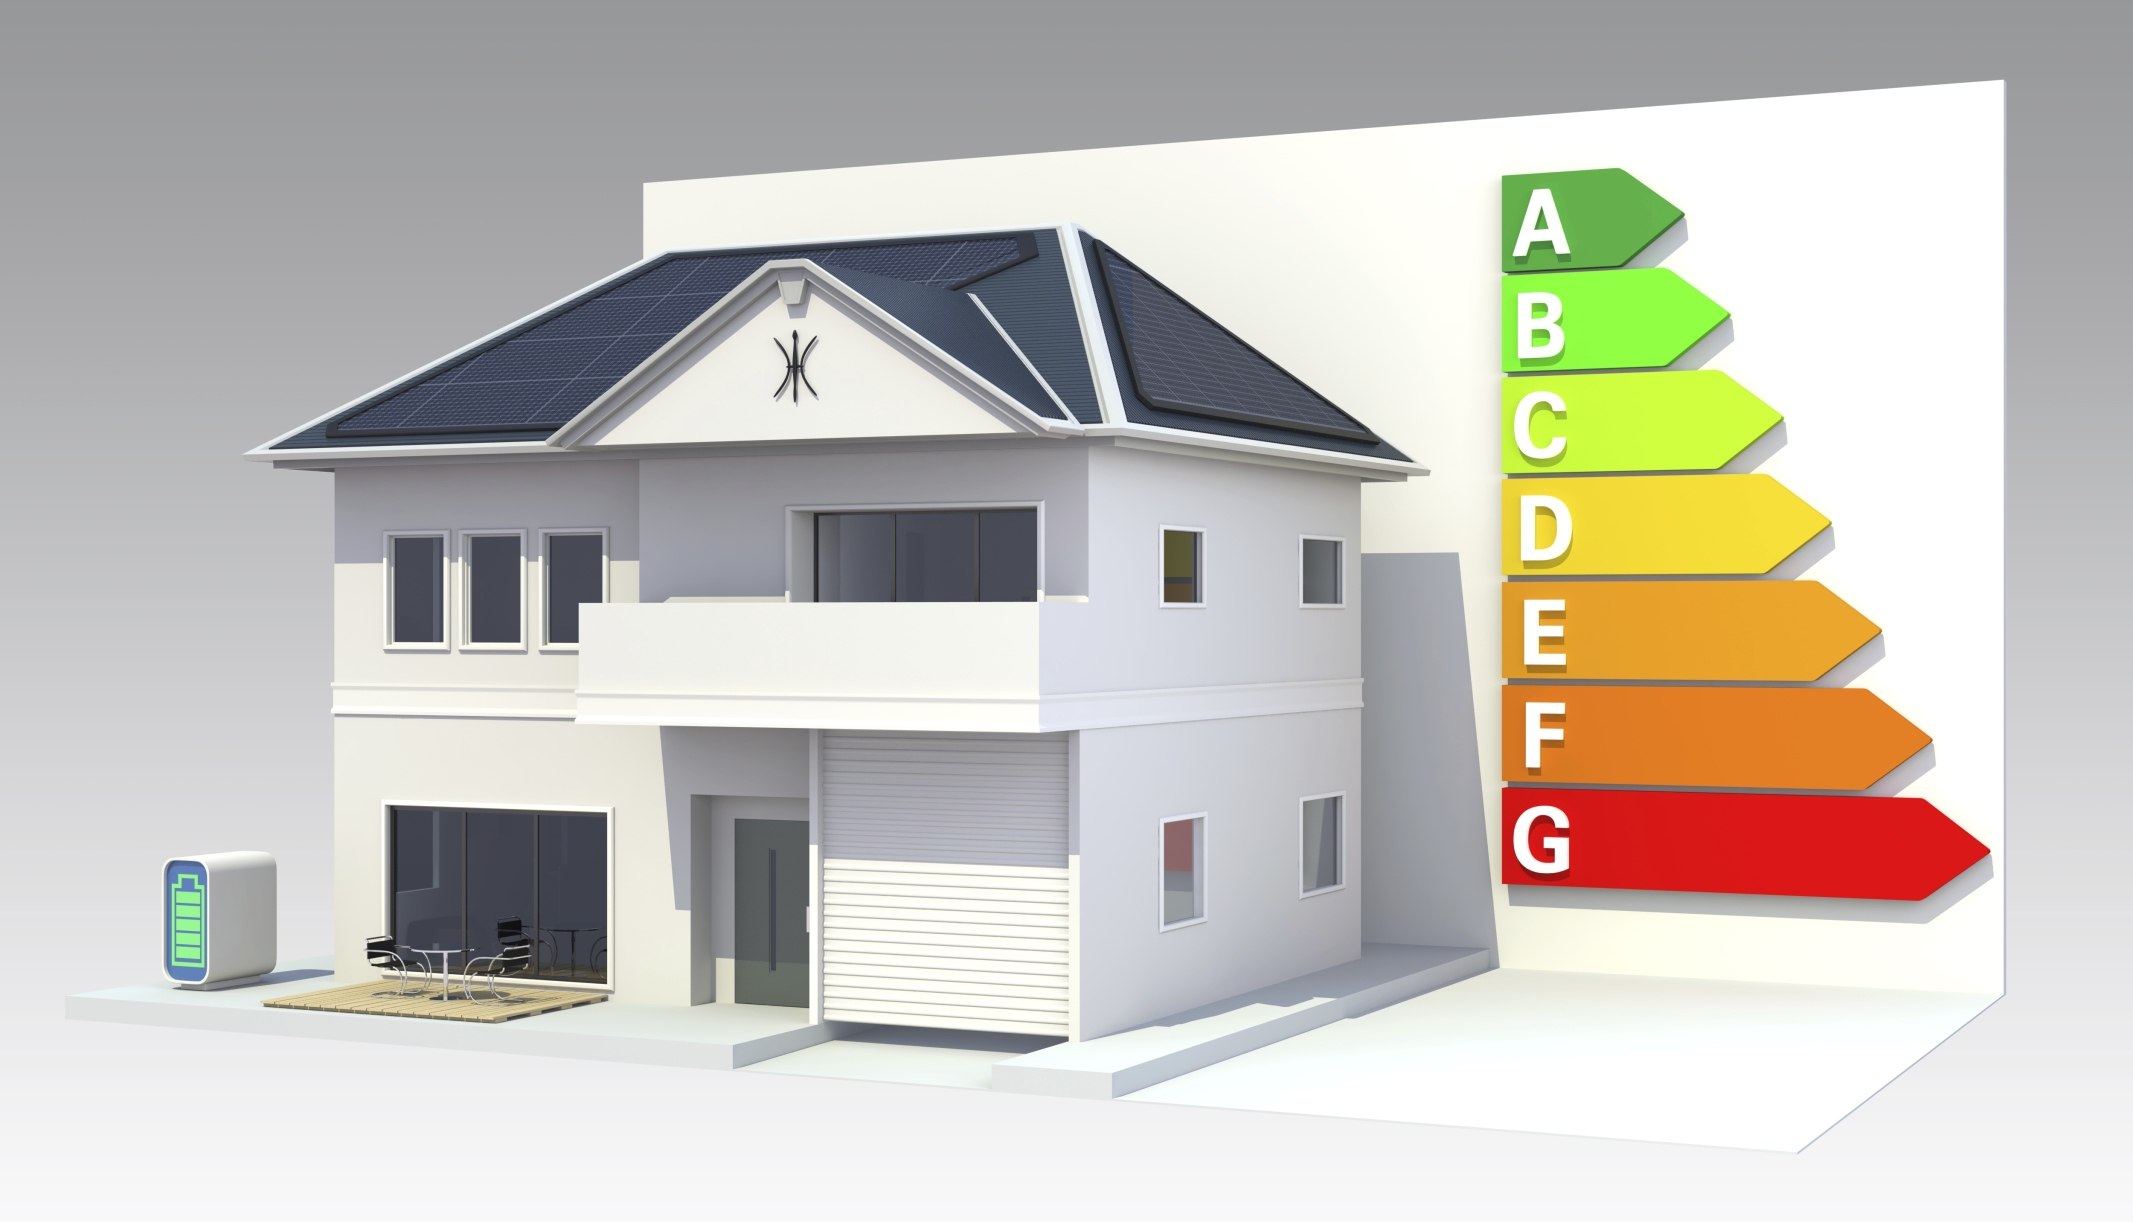 Smart house with roof mounted solar panels,energy classification chart